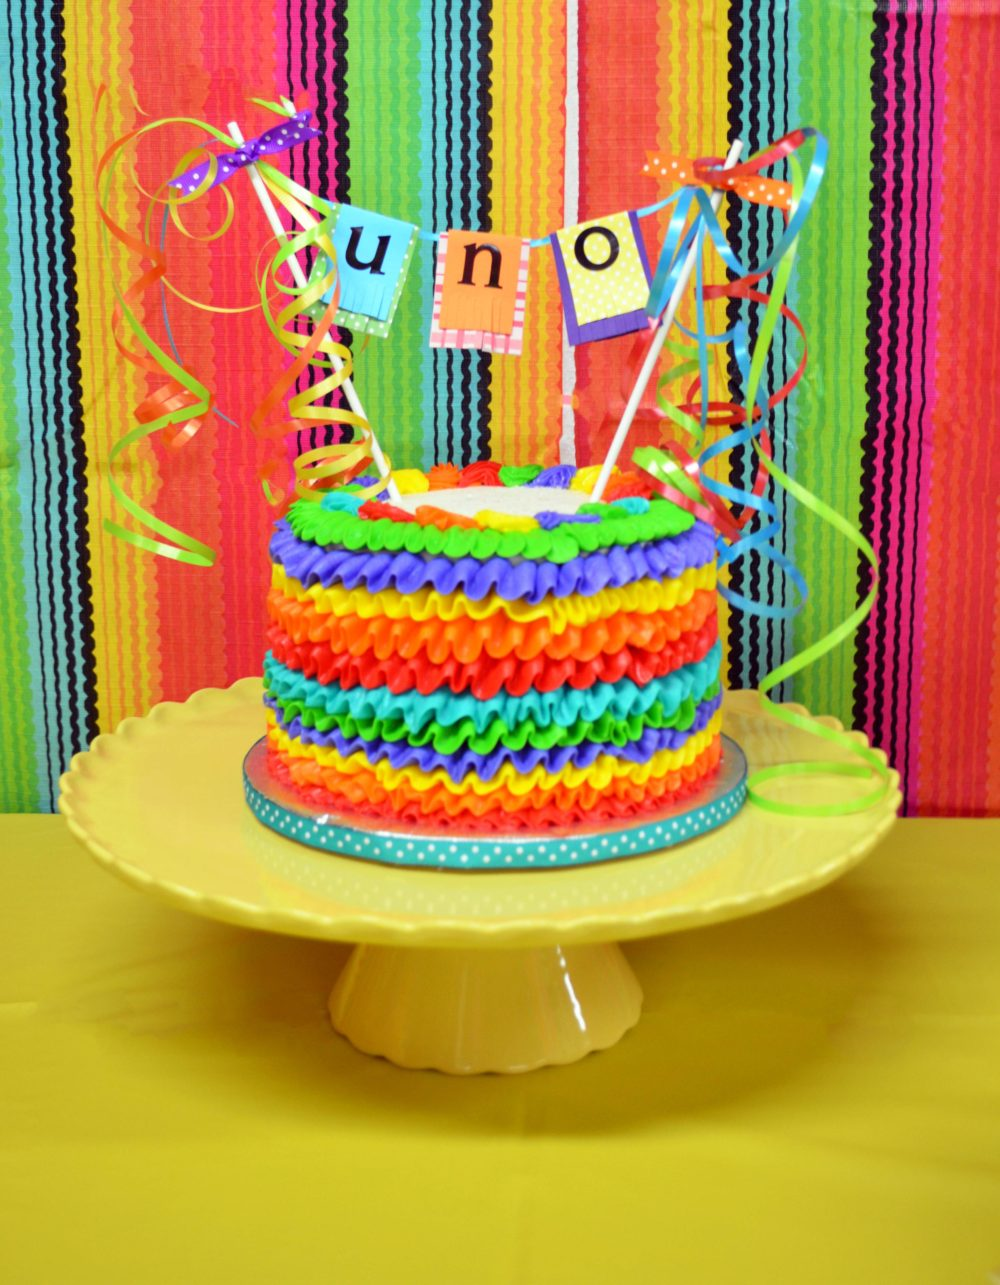 Birthday Cake Images For Cinquo De Mayo